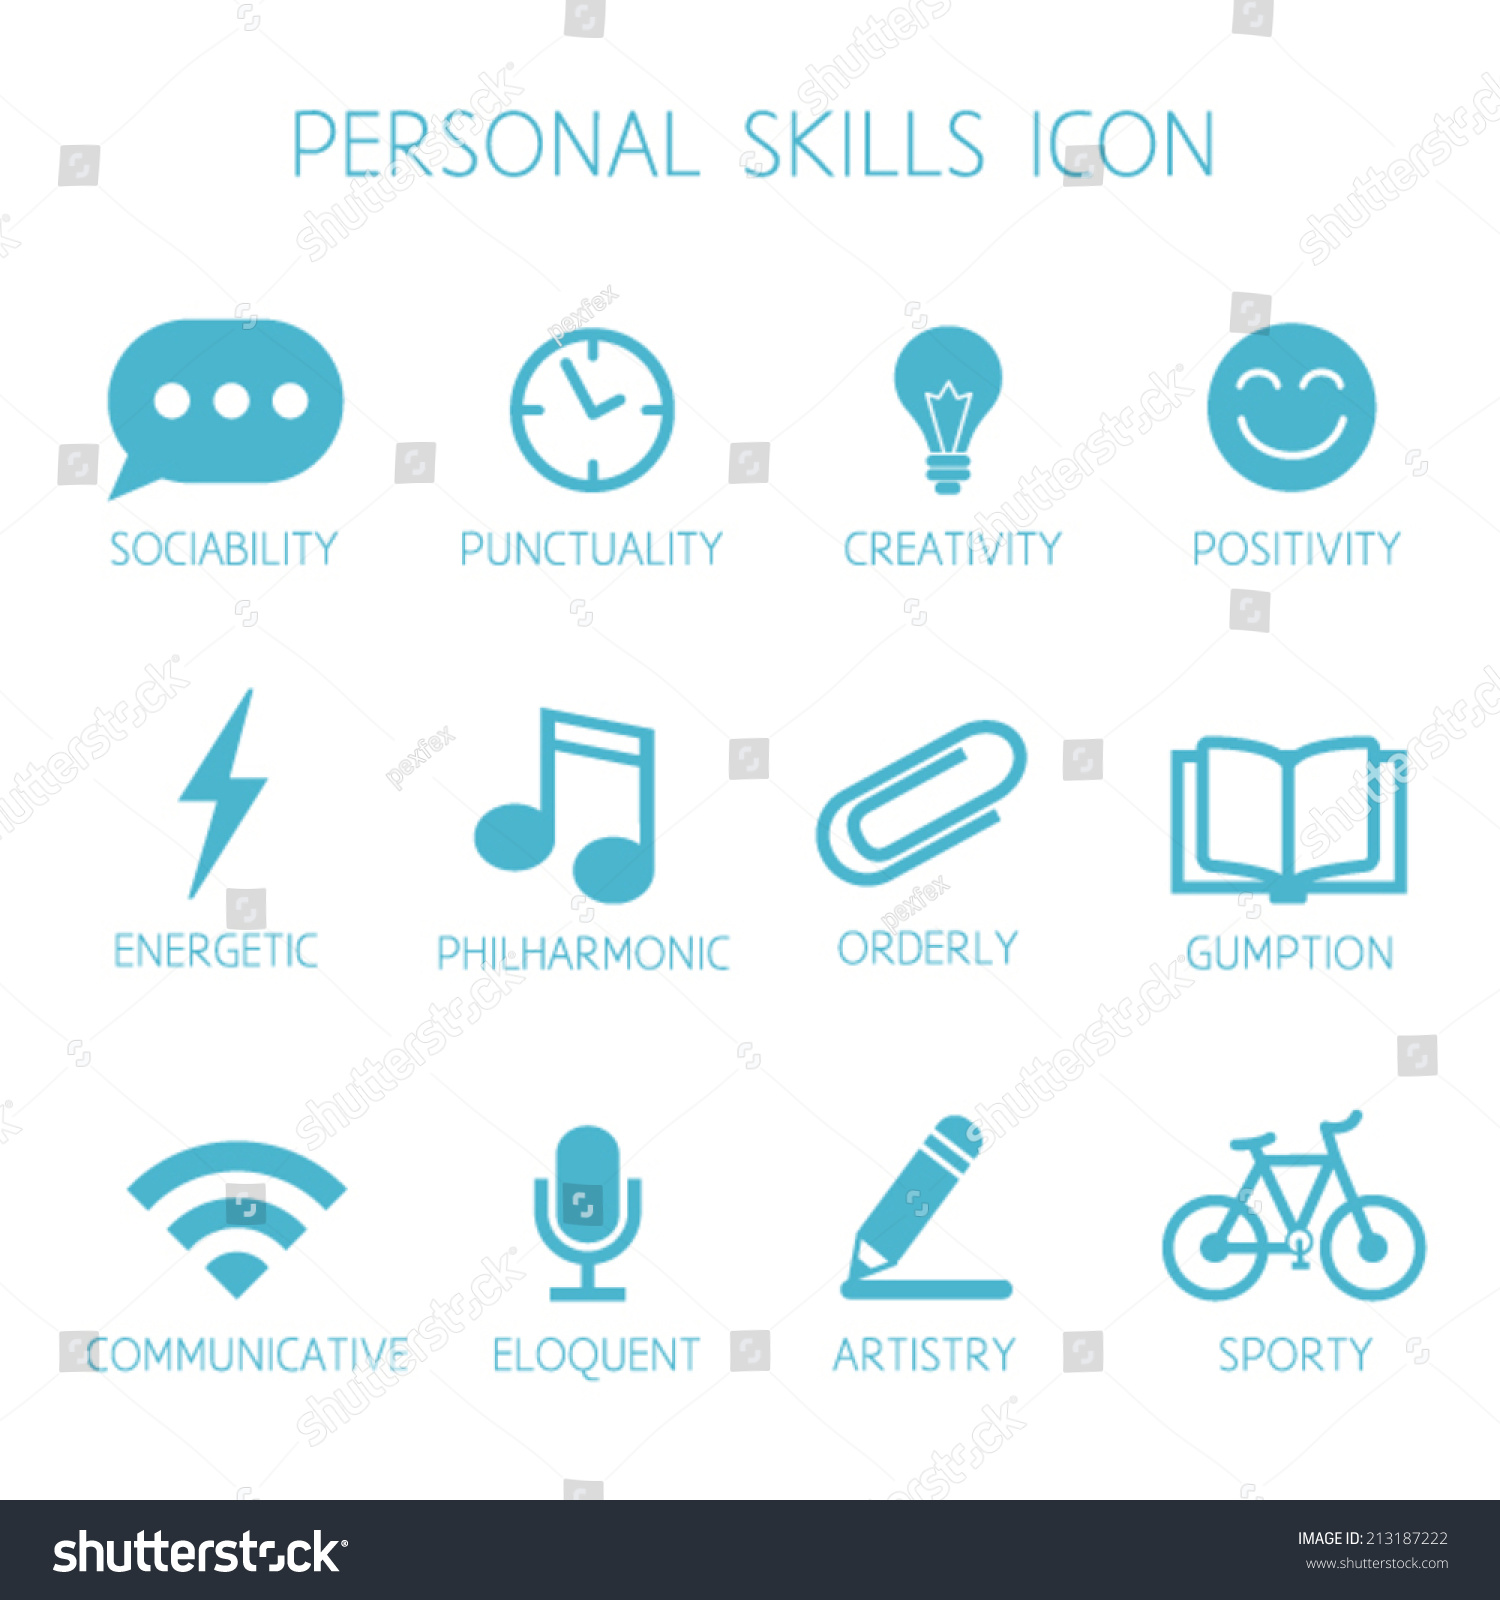 personal skills icon self characteristic vector stock